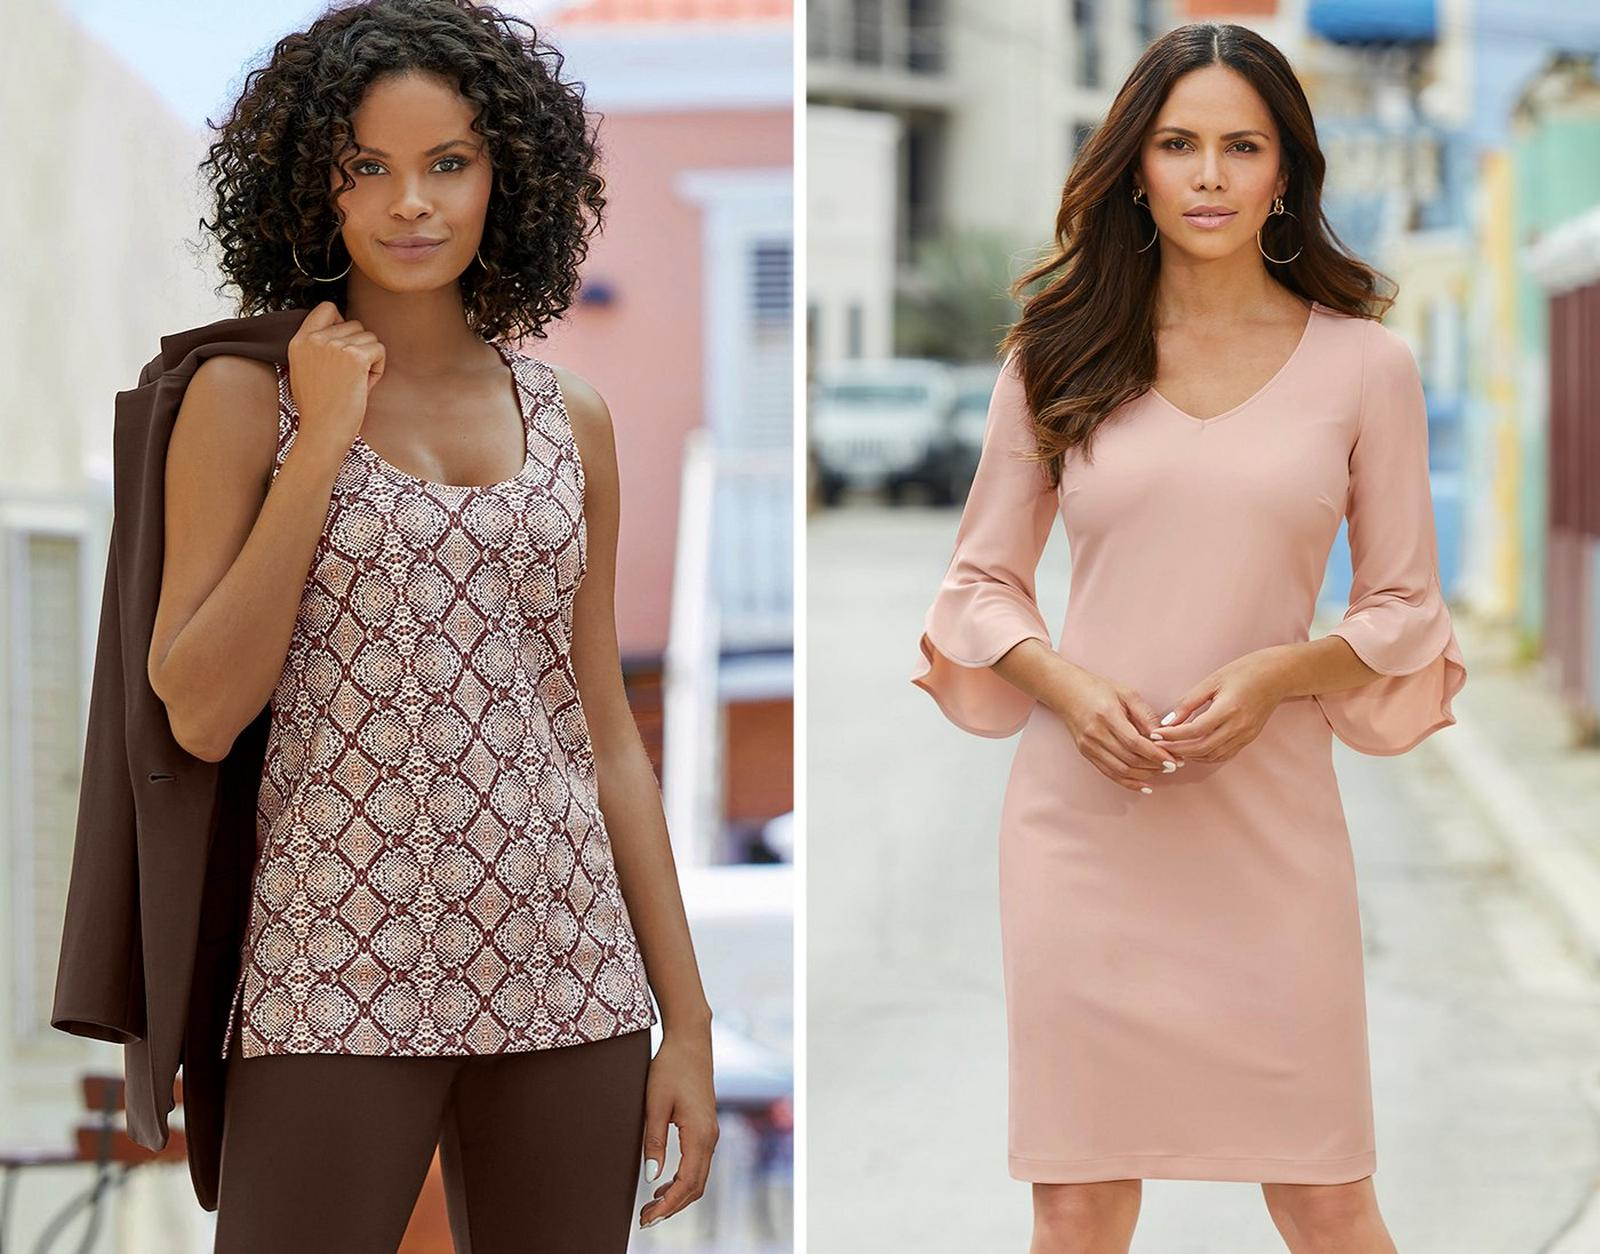 left model wearing a brown python print tank top and brown pants with a brown blazer slung over her shoulder. right model wearing a petal pink flare-sleeve sheath dress with a v-neck.